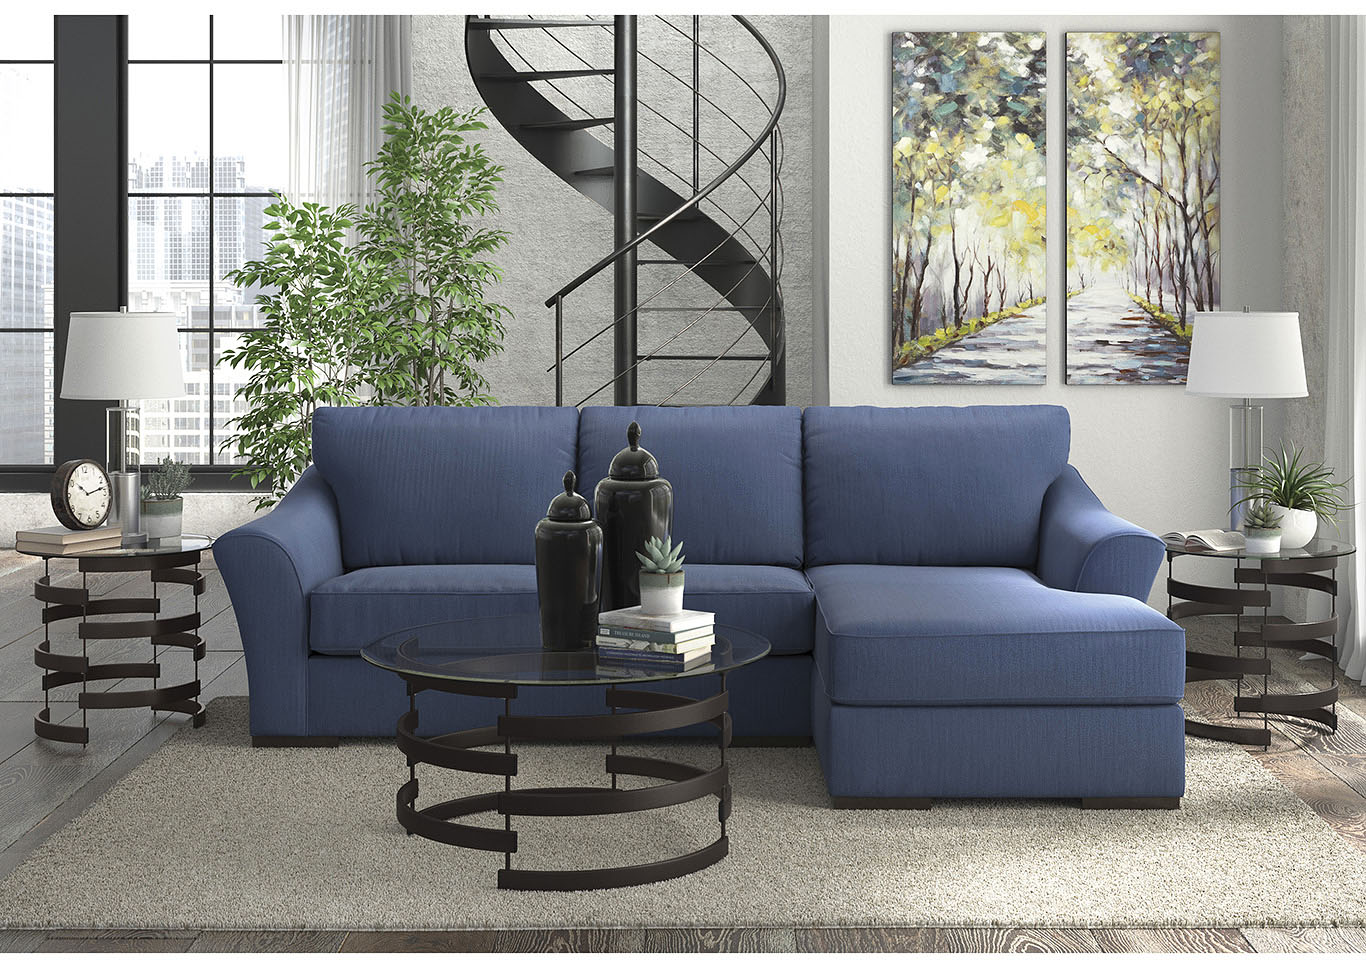 Awesome 545029 Bantry Nuvella Indigo Right Facing Corner Chaise Gmtry Best Dining Table And Chair Ideas Images Gmtryco